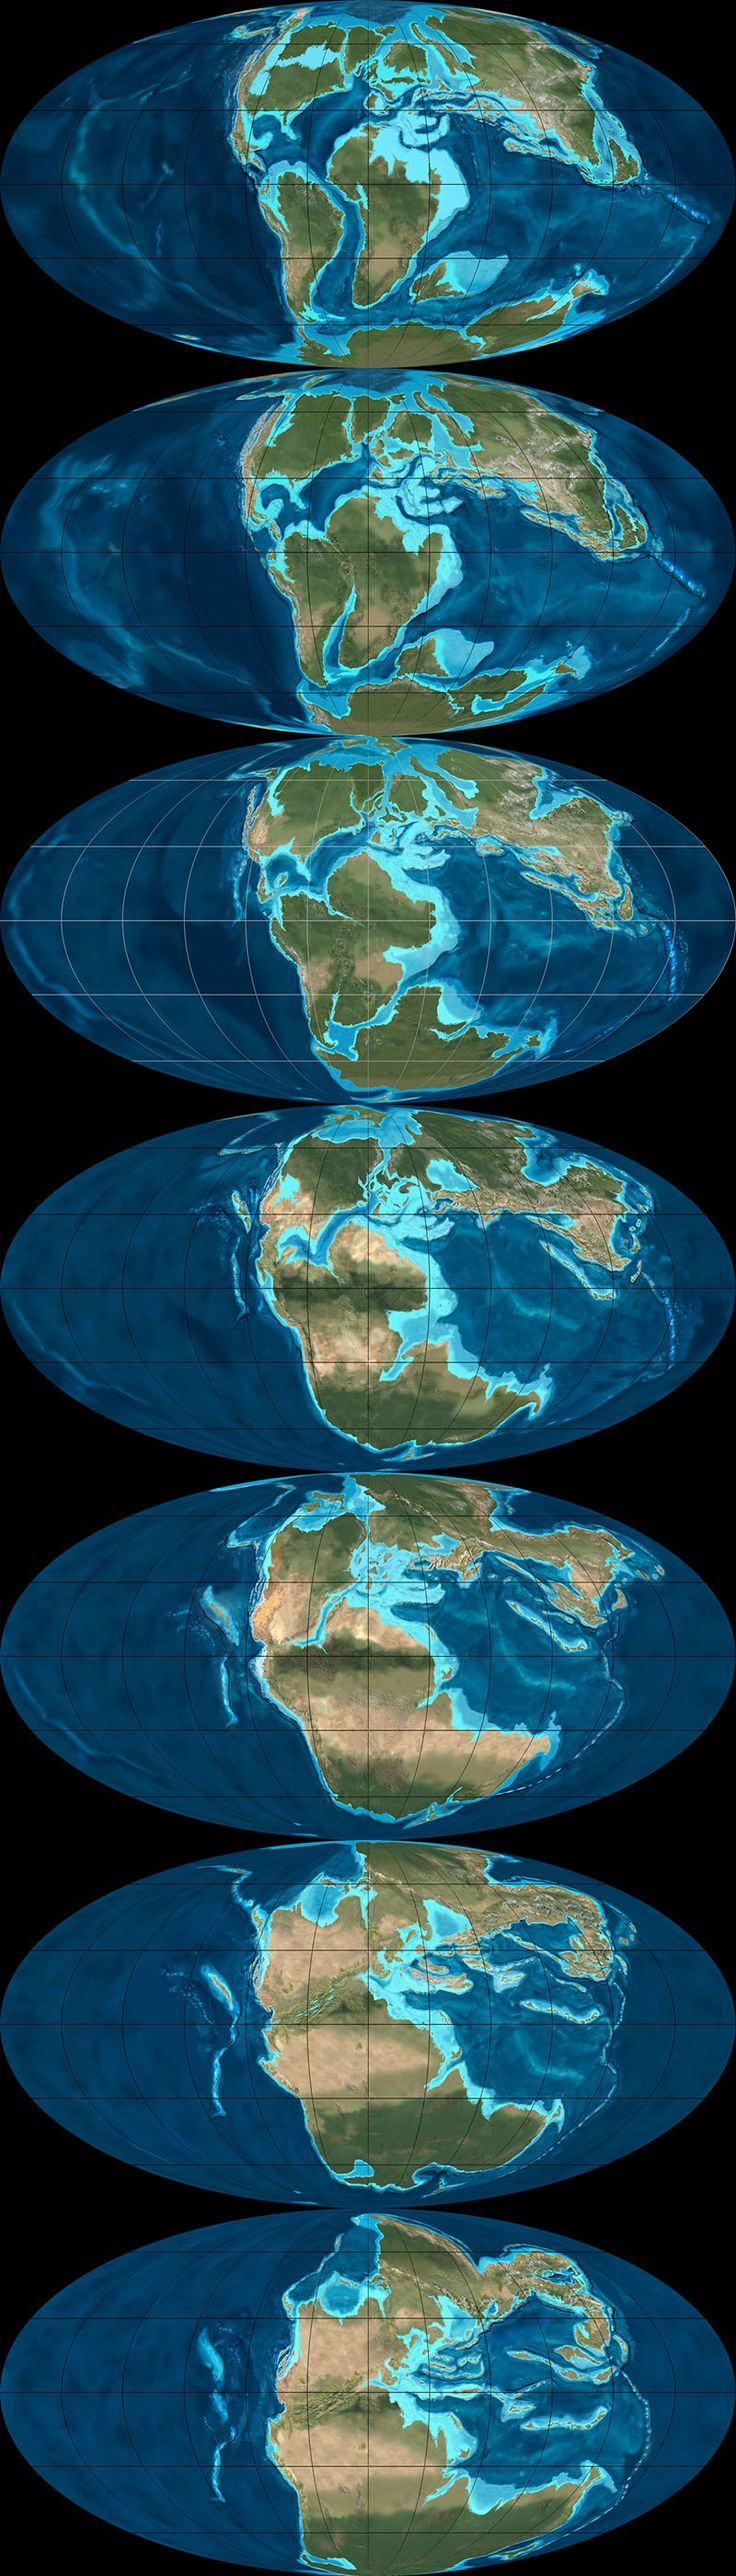 Paleo-tectonic maps by Ron Blakey: from top to bottom, 105 to 240 million years ago.